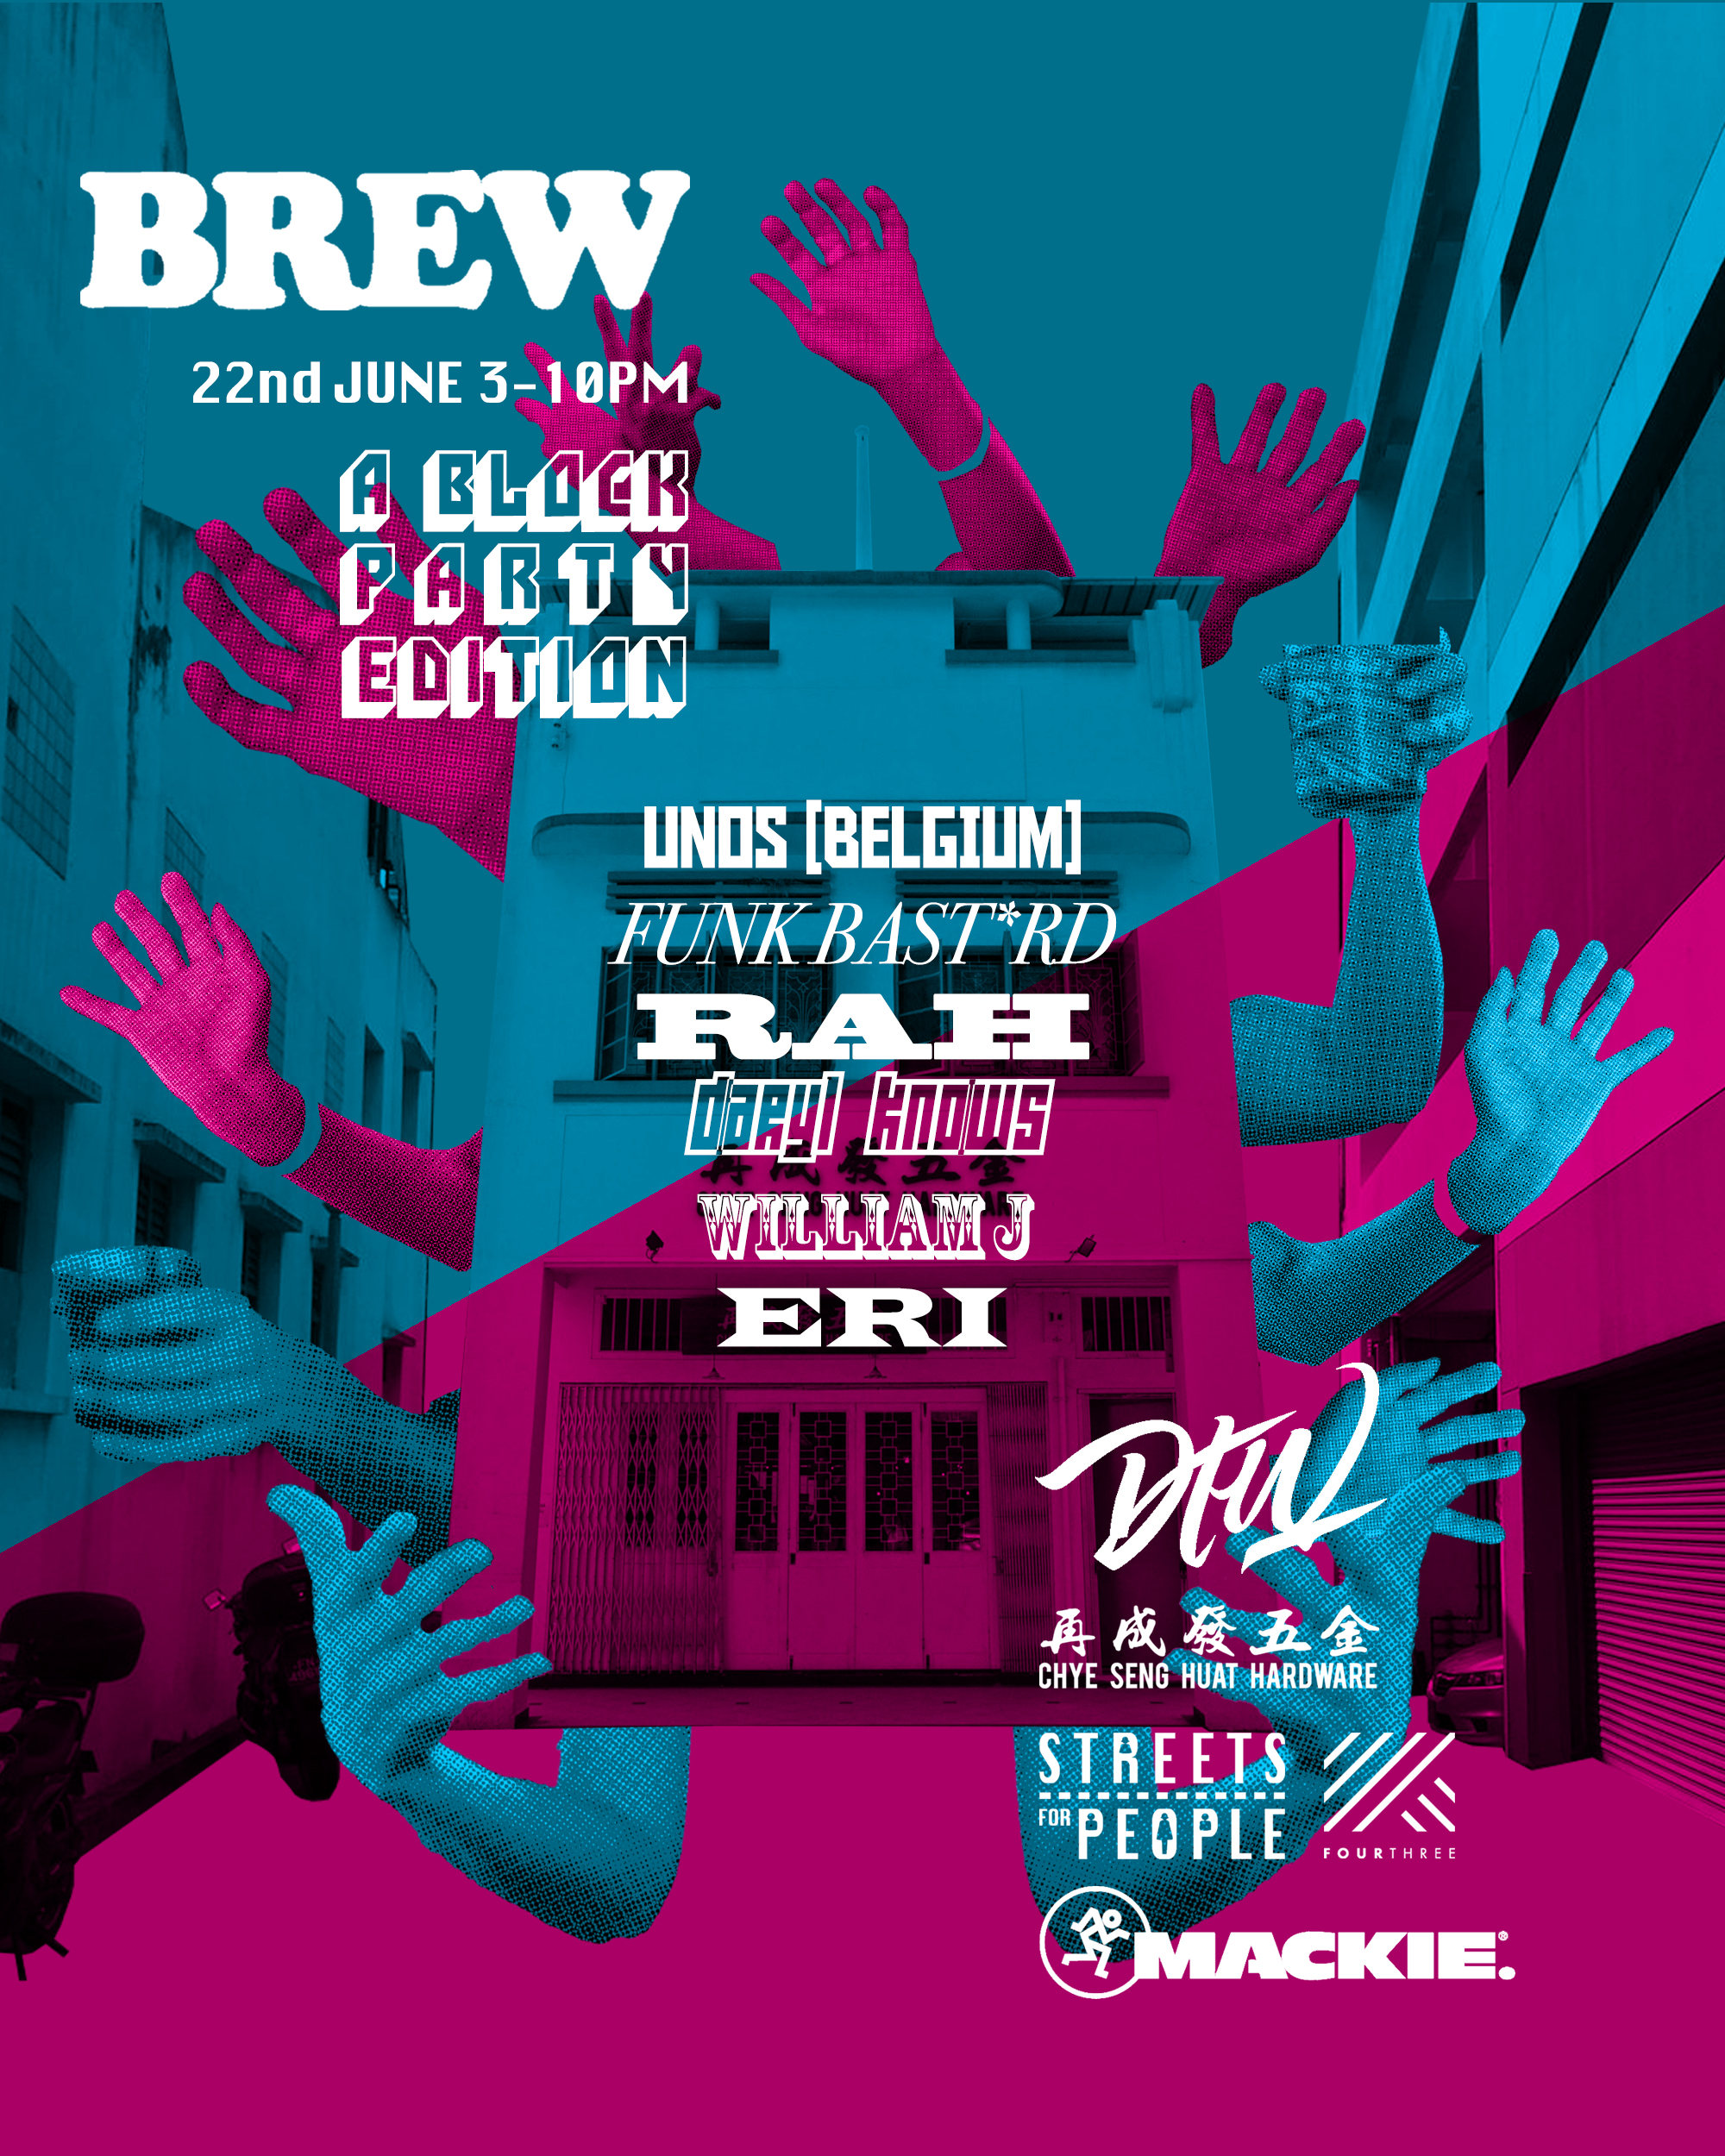 BREW, an original music initiative by Darker Than Wax and Papa Palheta, which grew organically since Feb 2017, is back bigger than ever this 22 June 2019! We will be taking over a section of Tyrwhitt Road with a full DTW lineup:   -  UNOS  [Belgium] -  FUNK BSTRD  -  RAH  -  Daryl Knows  -  William J  -  E R I - Ashley Erianah   EXTENDED HOURS >> 3 - 10PM!  • Food and drinks prepared lovingly by the good people at  Chye Seng Huat Hardware  • Visual Projection of Jalan Besar by  FOURTHREE                                          • Mackie Sound System courtesy of  City Music Singapore   BREW is also supported by Streets for People,  a programme by the  Urban Redevelopment Authority  supporting community-initiated projects that transform Singapore's streets into vibrant public spaces.  So spread the word, bring your homies, and come celebrate the joyous mix of music, art and design with us.  It's all about the good vibrations! ---------------------------------------------------------------------------- Flyer Artwork:  Bryan Kang